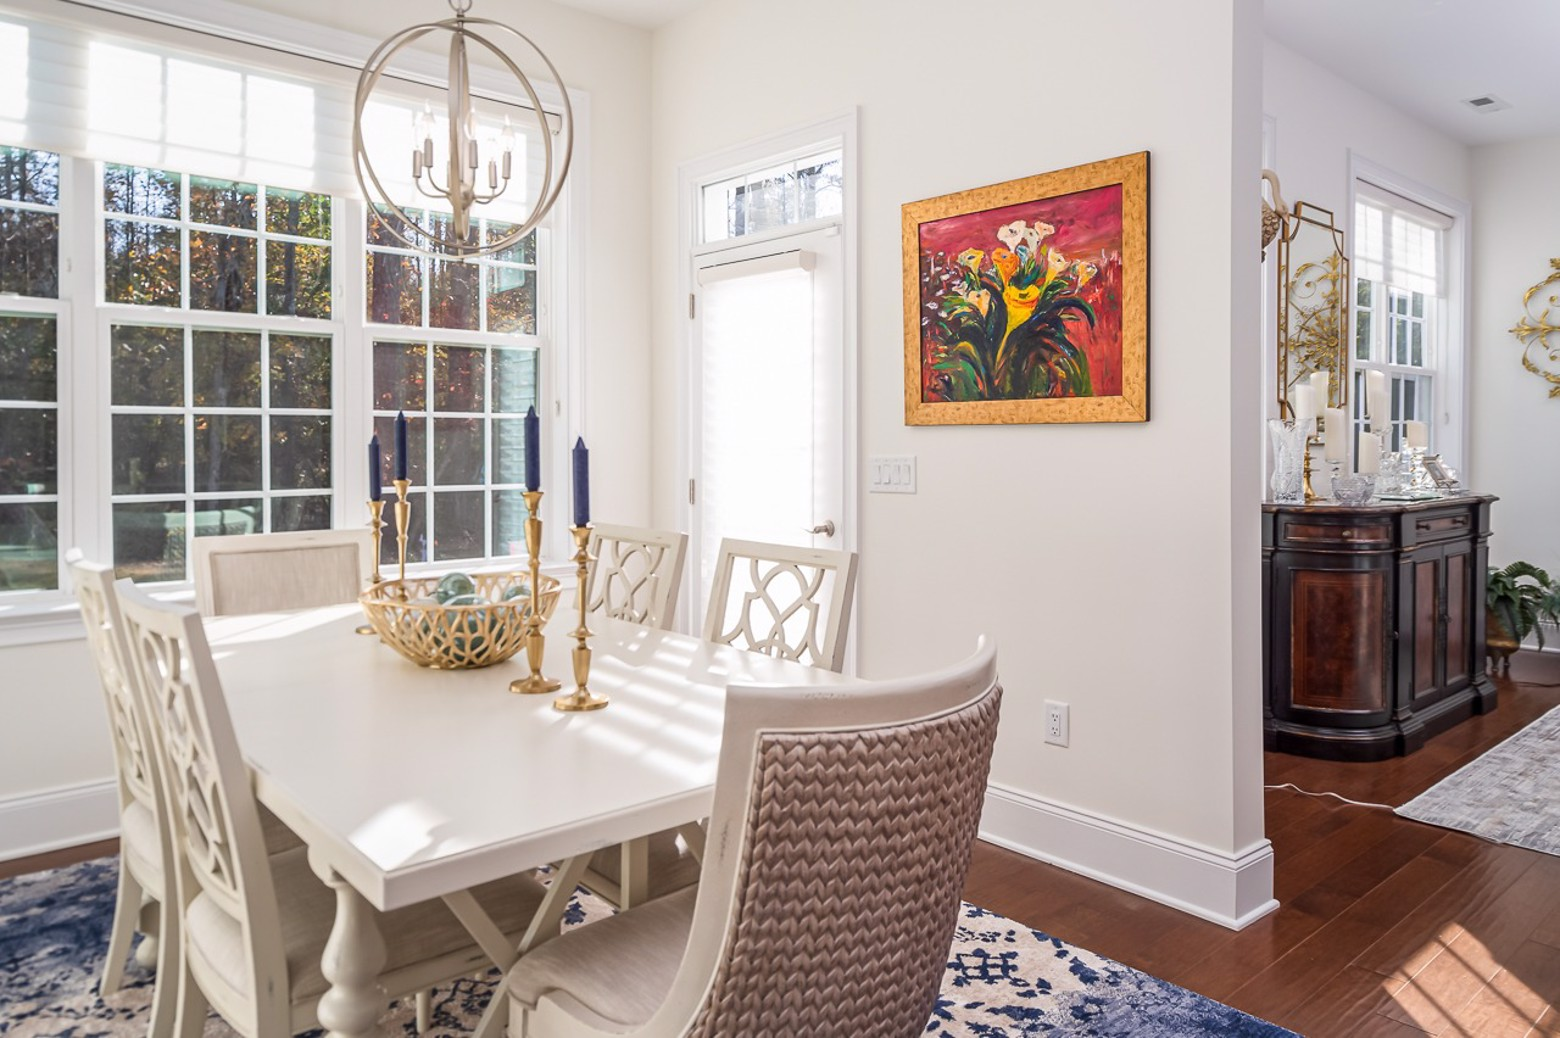 16_Dining_View to Living Room.jpg image